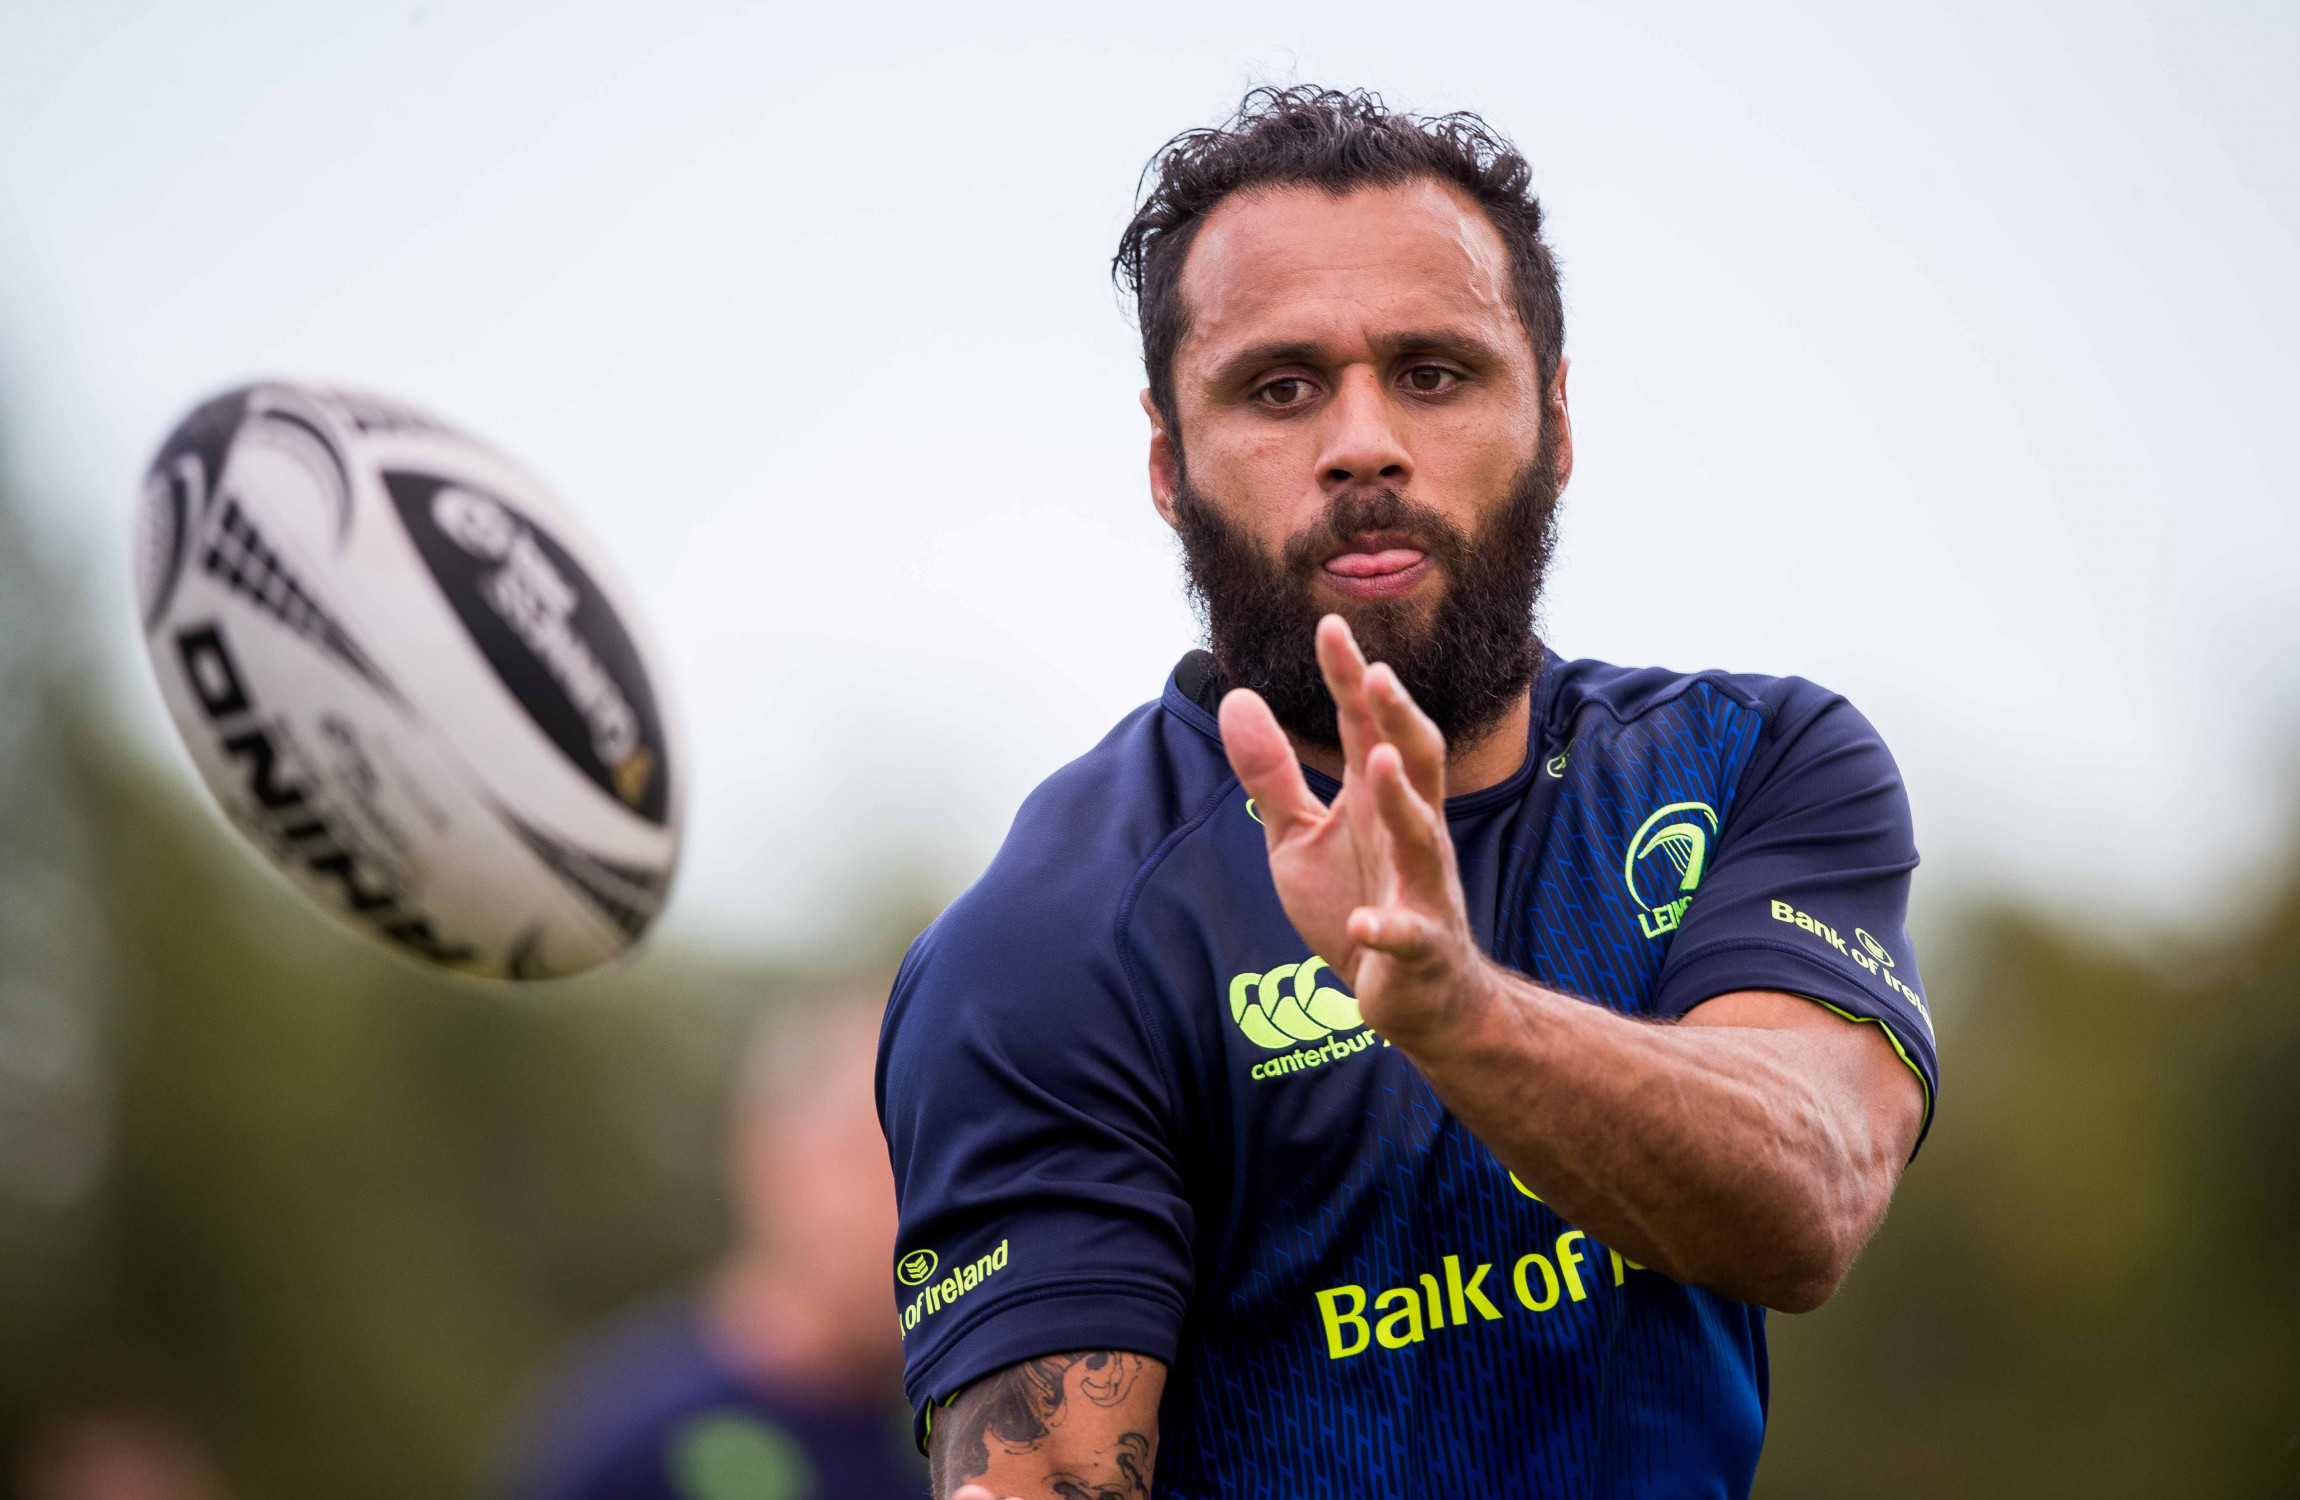 Two Leinster players denied entry to South Africa